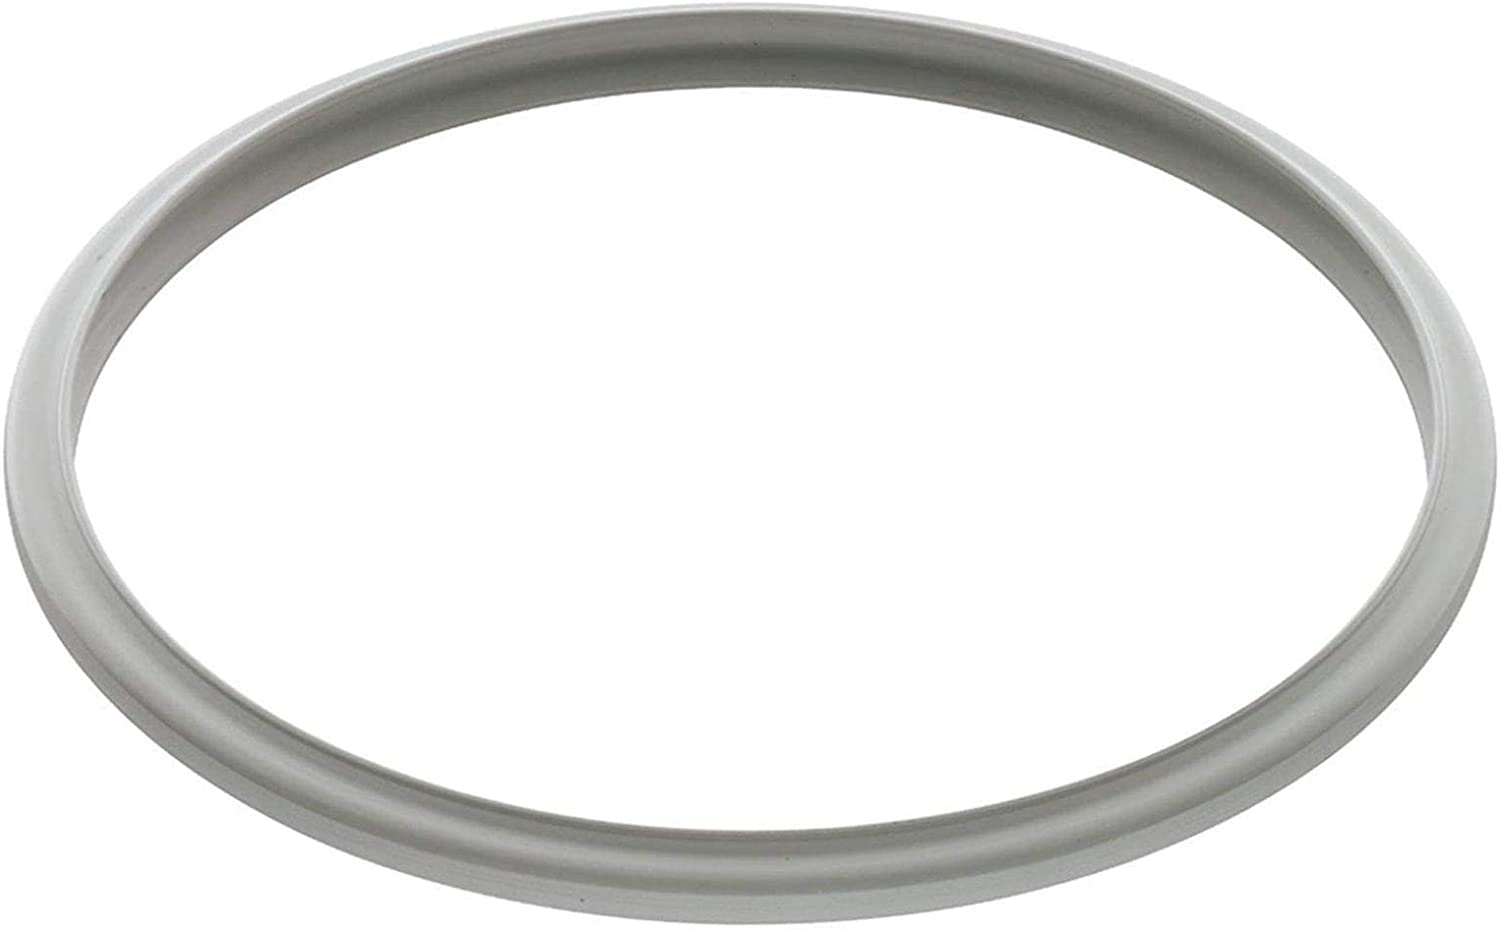 Kitchen Silicone Sealing Ring, Electric Pressure Cooker Silicone Sealing Replacement Ring for Many 5 Liter 6 Liter, Pressure Cooker Replacement Rubber Gaskets